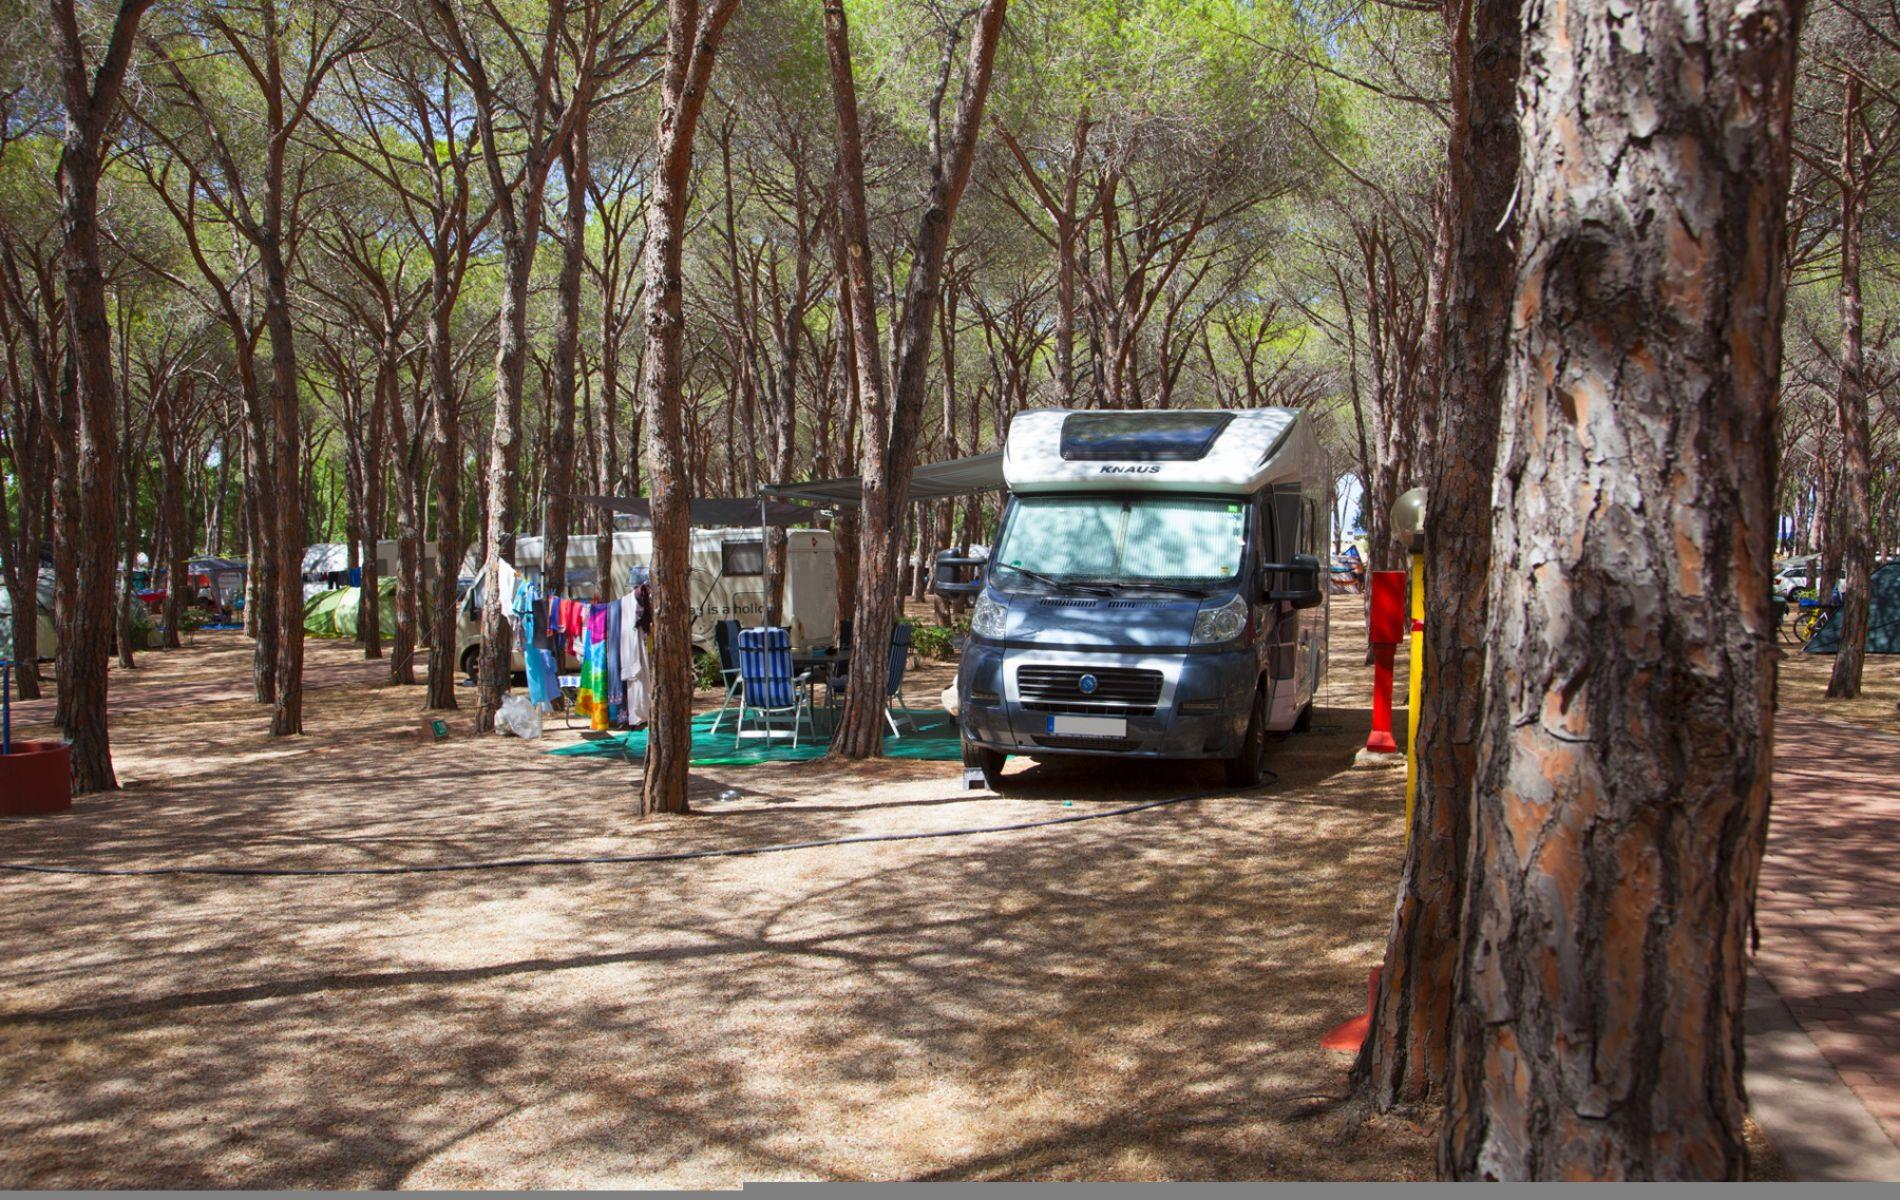 Emplacement - Emplacement Type B - Camping Baia Blu la Tortuga